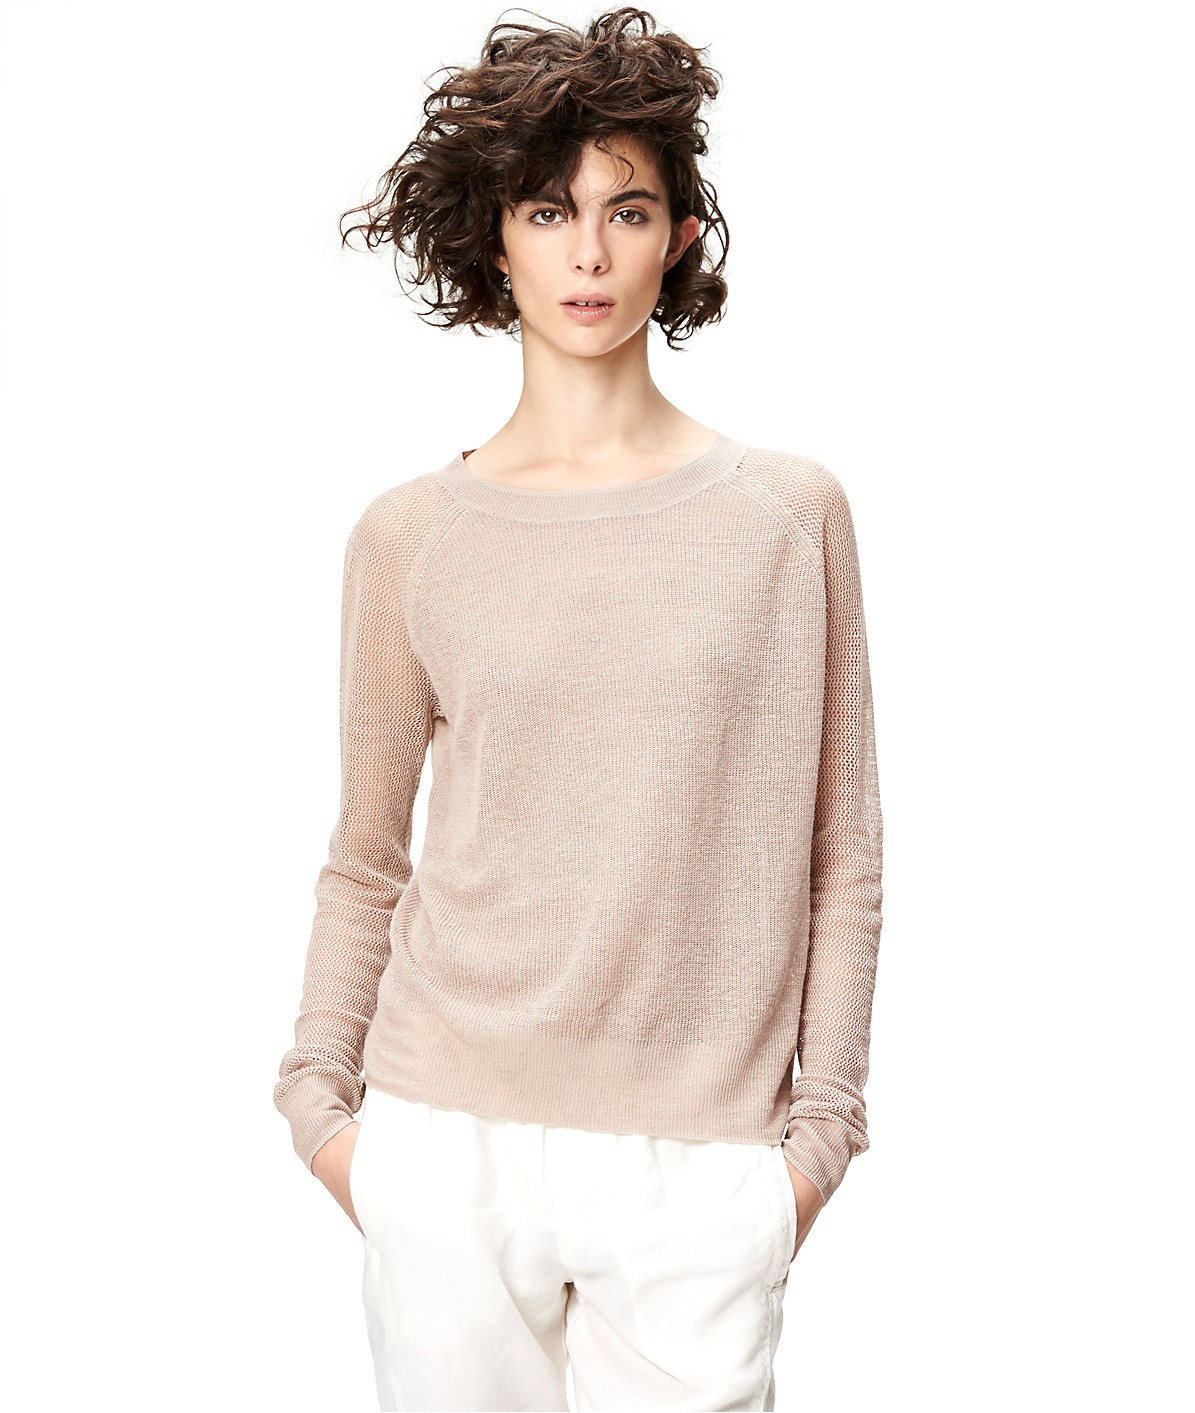 Lightweight knit jumper S1165001 from liebeskind